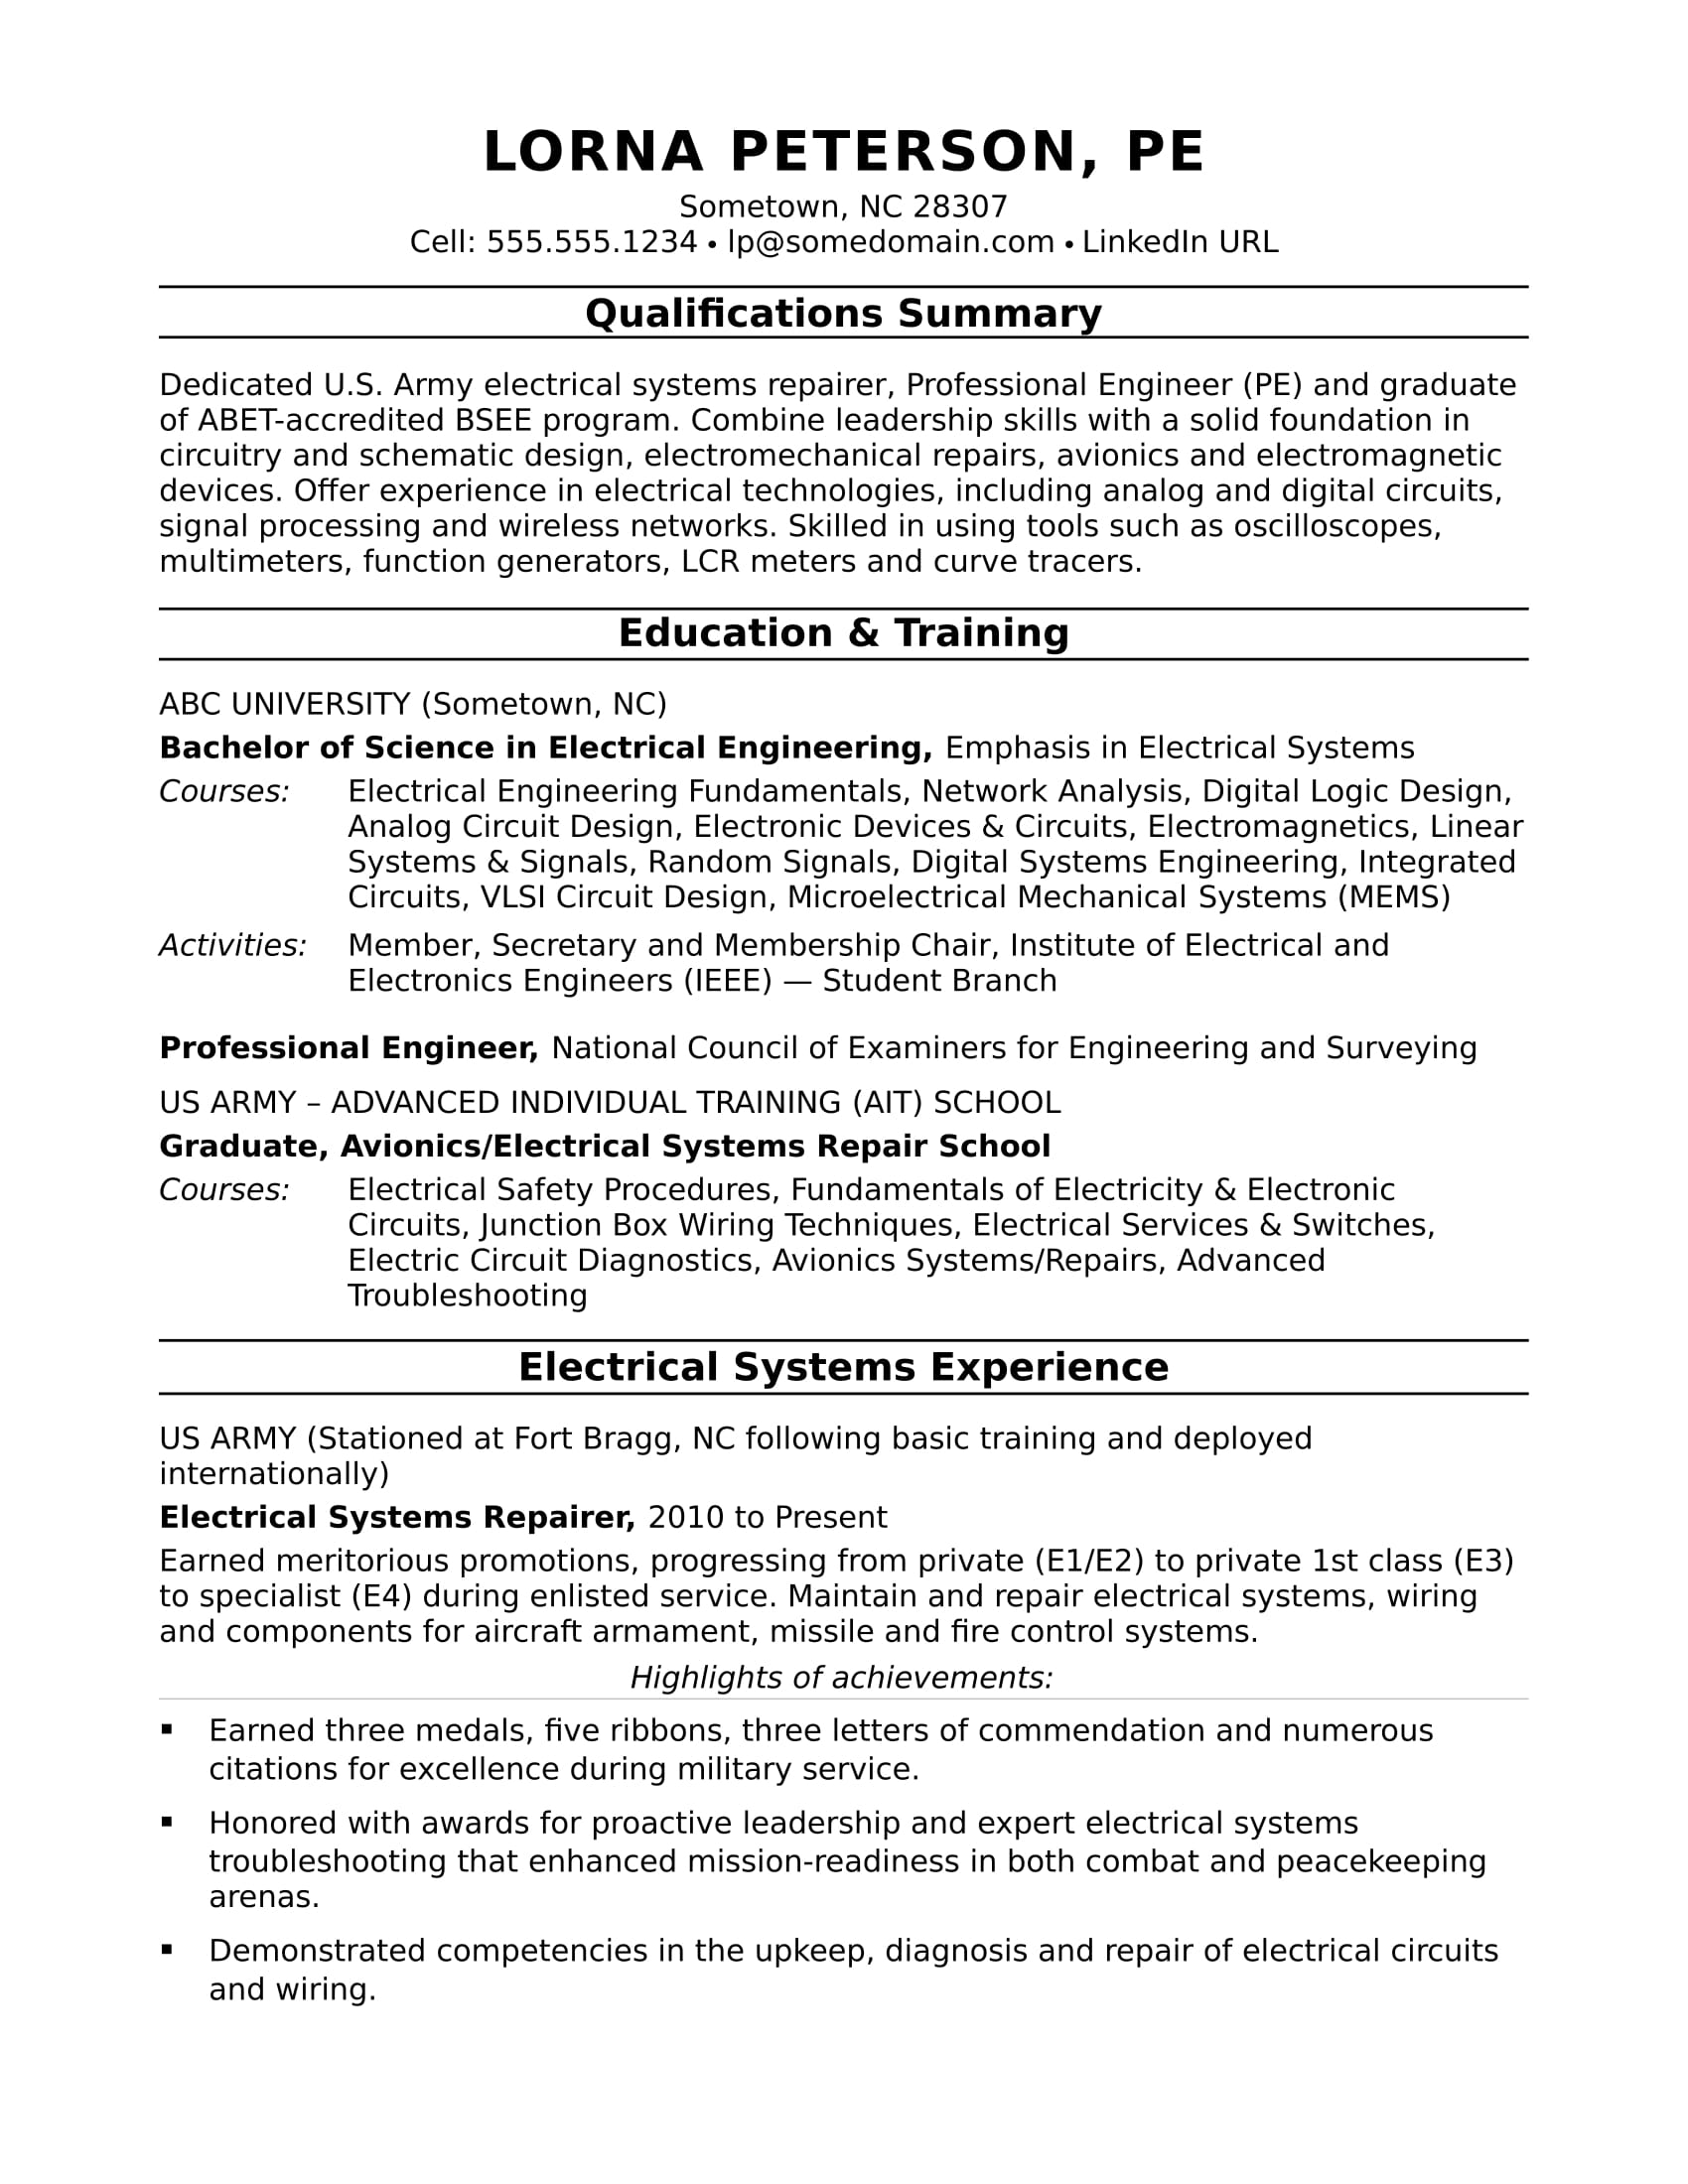 Sample Resume for a Midlevel Electrical Engineer Monstercom